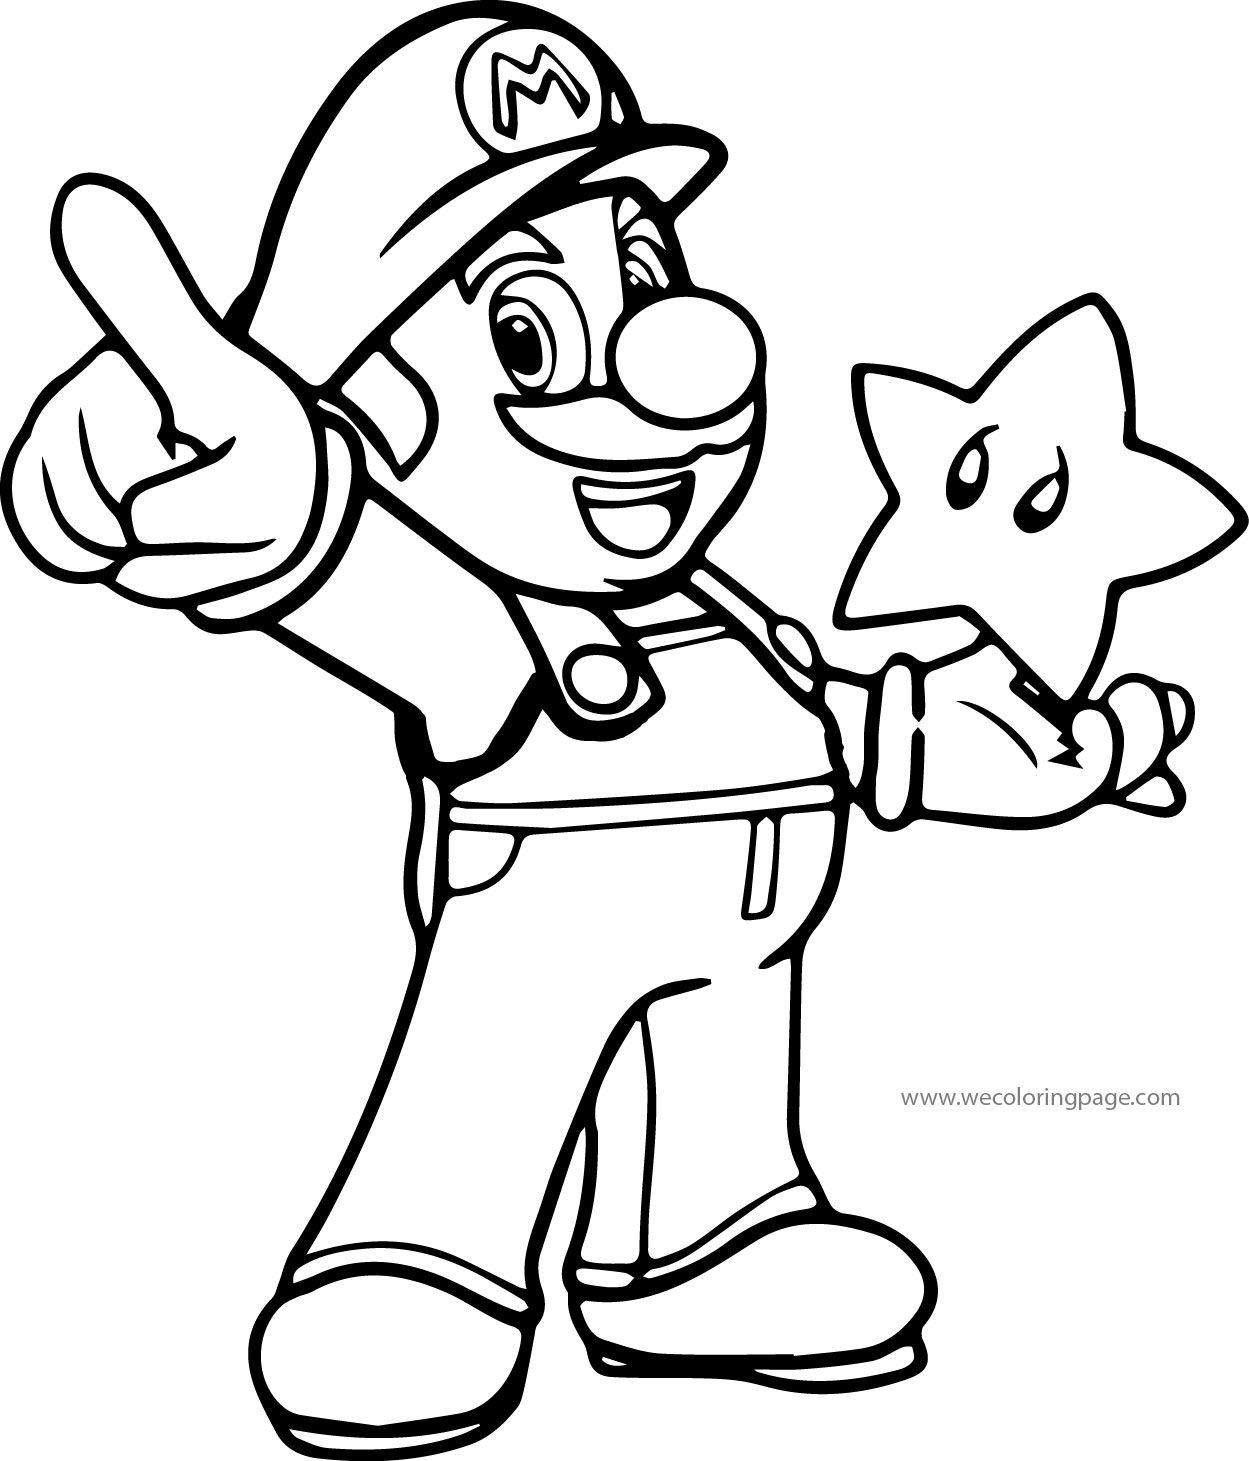 1249x1461 Super Mario Coloring Page Birthdays, Coloring Books And Adult